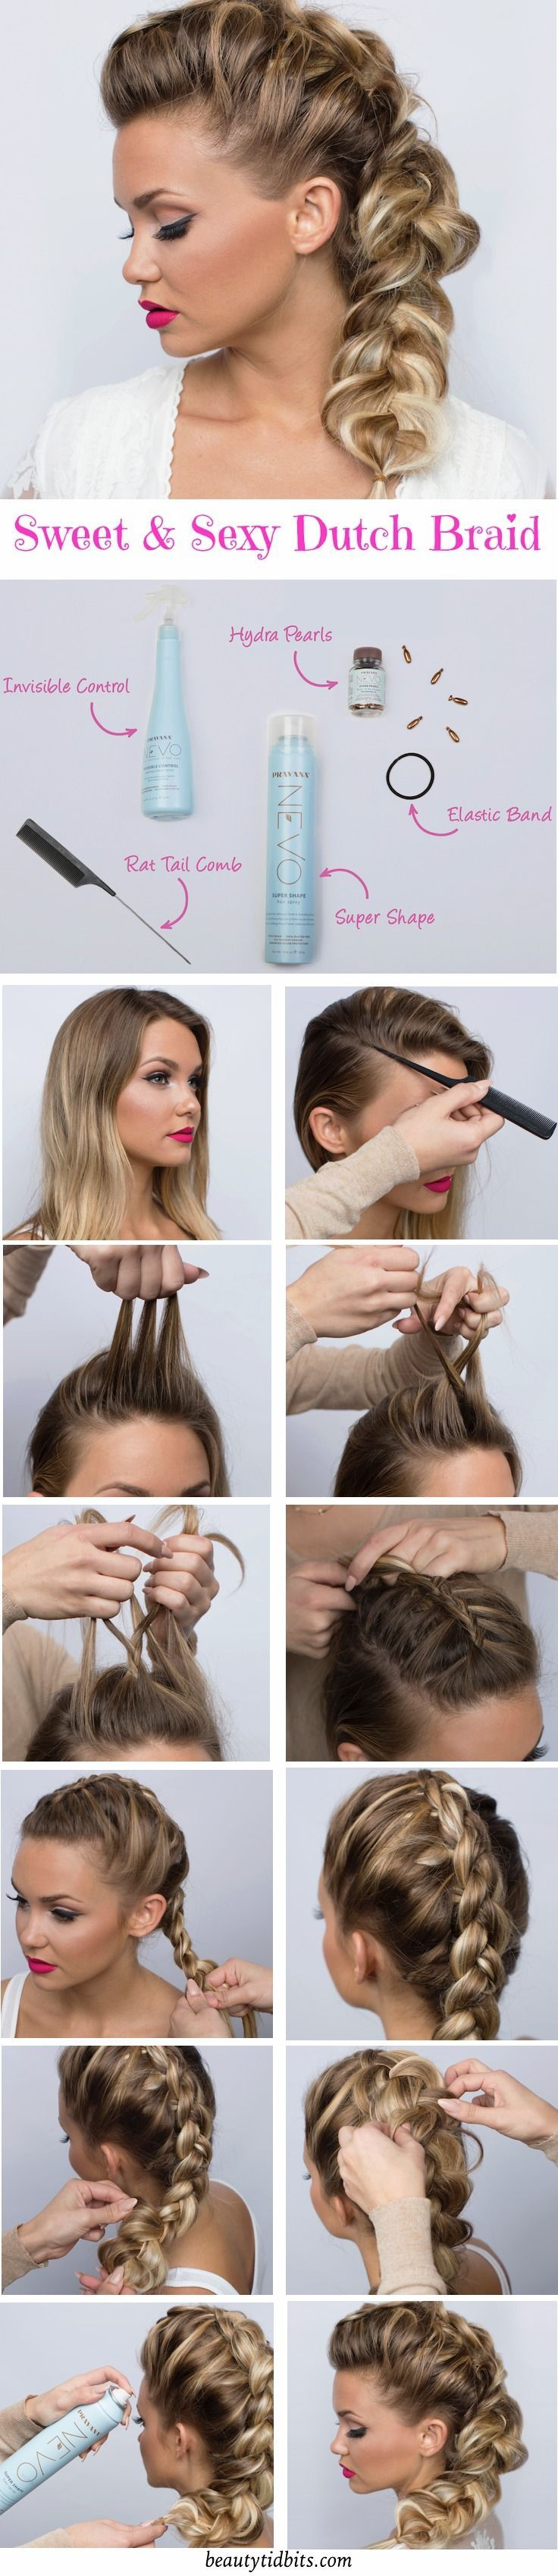 128 best Hairstyles images on Pinterest